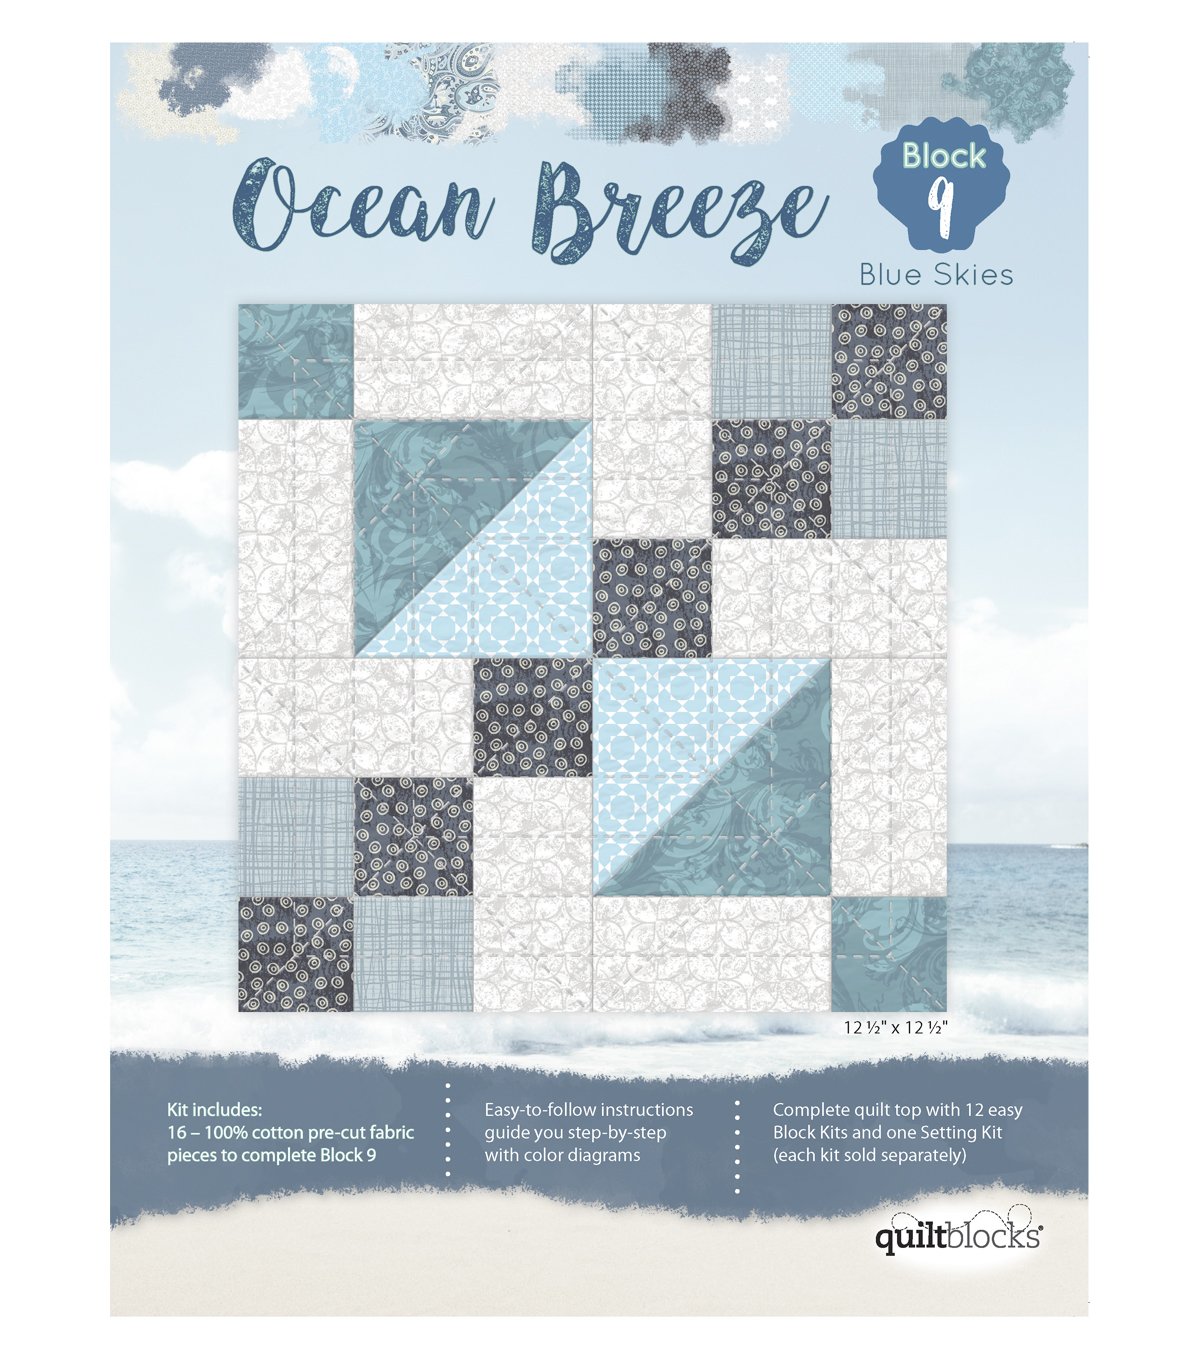 Quilt Block Ocean Breeze 16-Pieces Block 9 Kit-Blue Skies